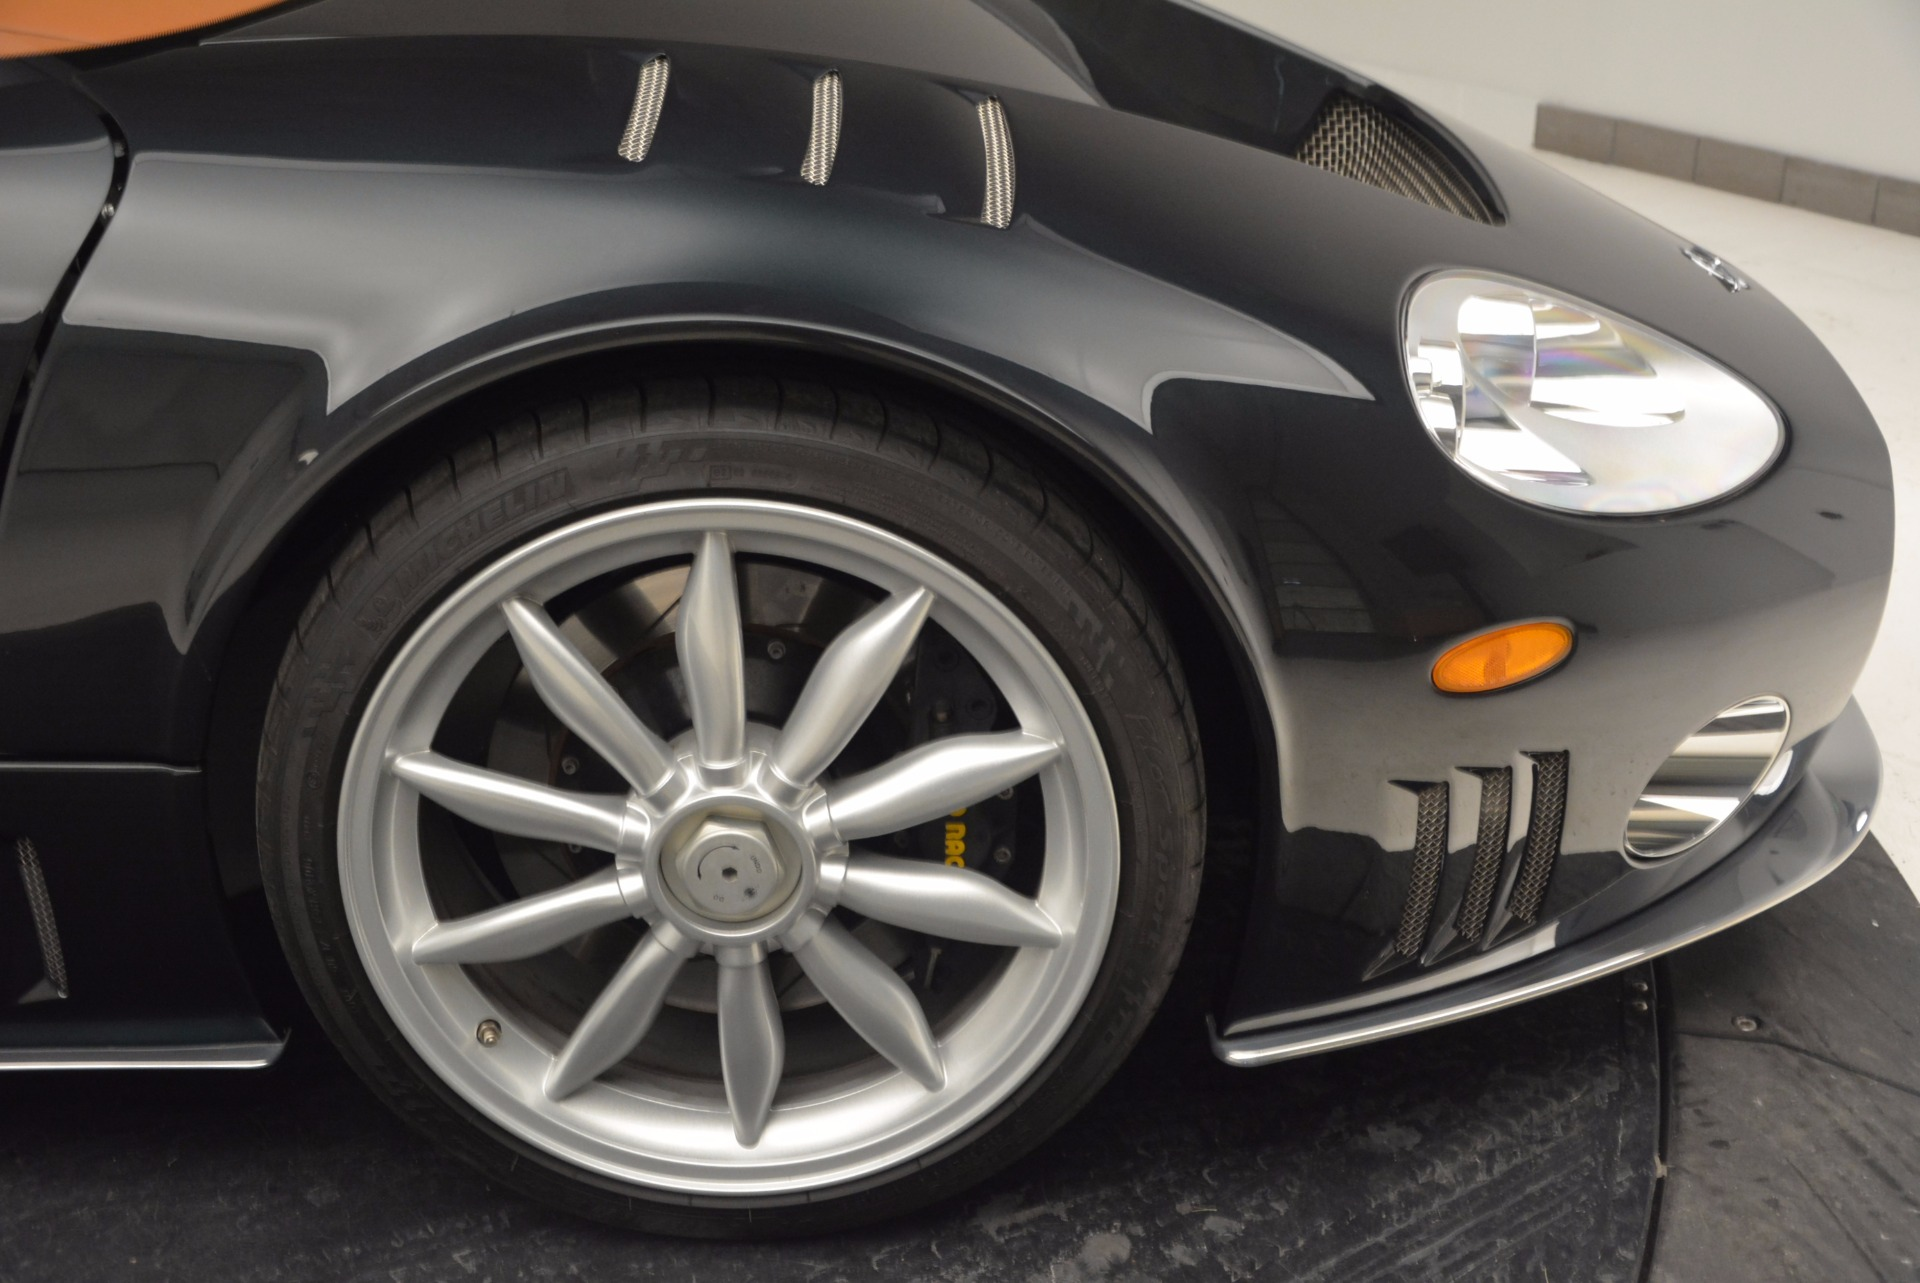 Used 2006 Spyker C8 Spyder  For Sale In Greenwich, CT 1007_p24